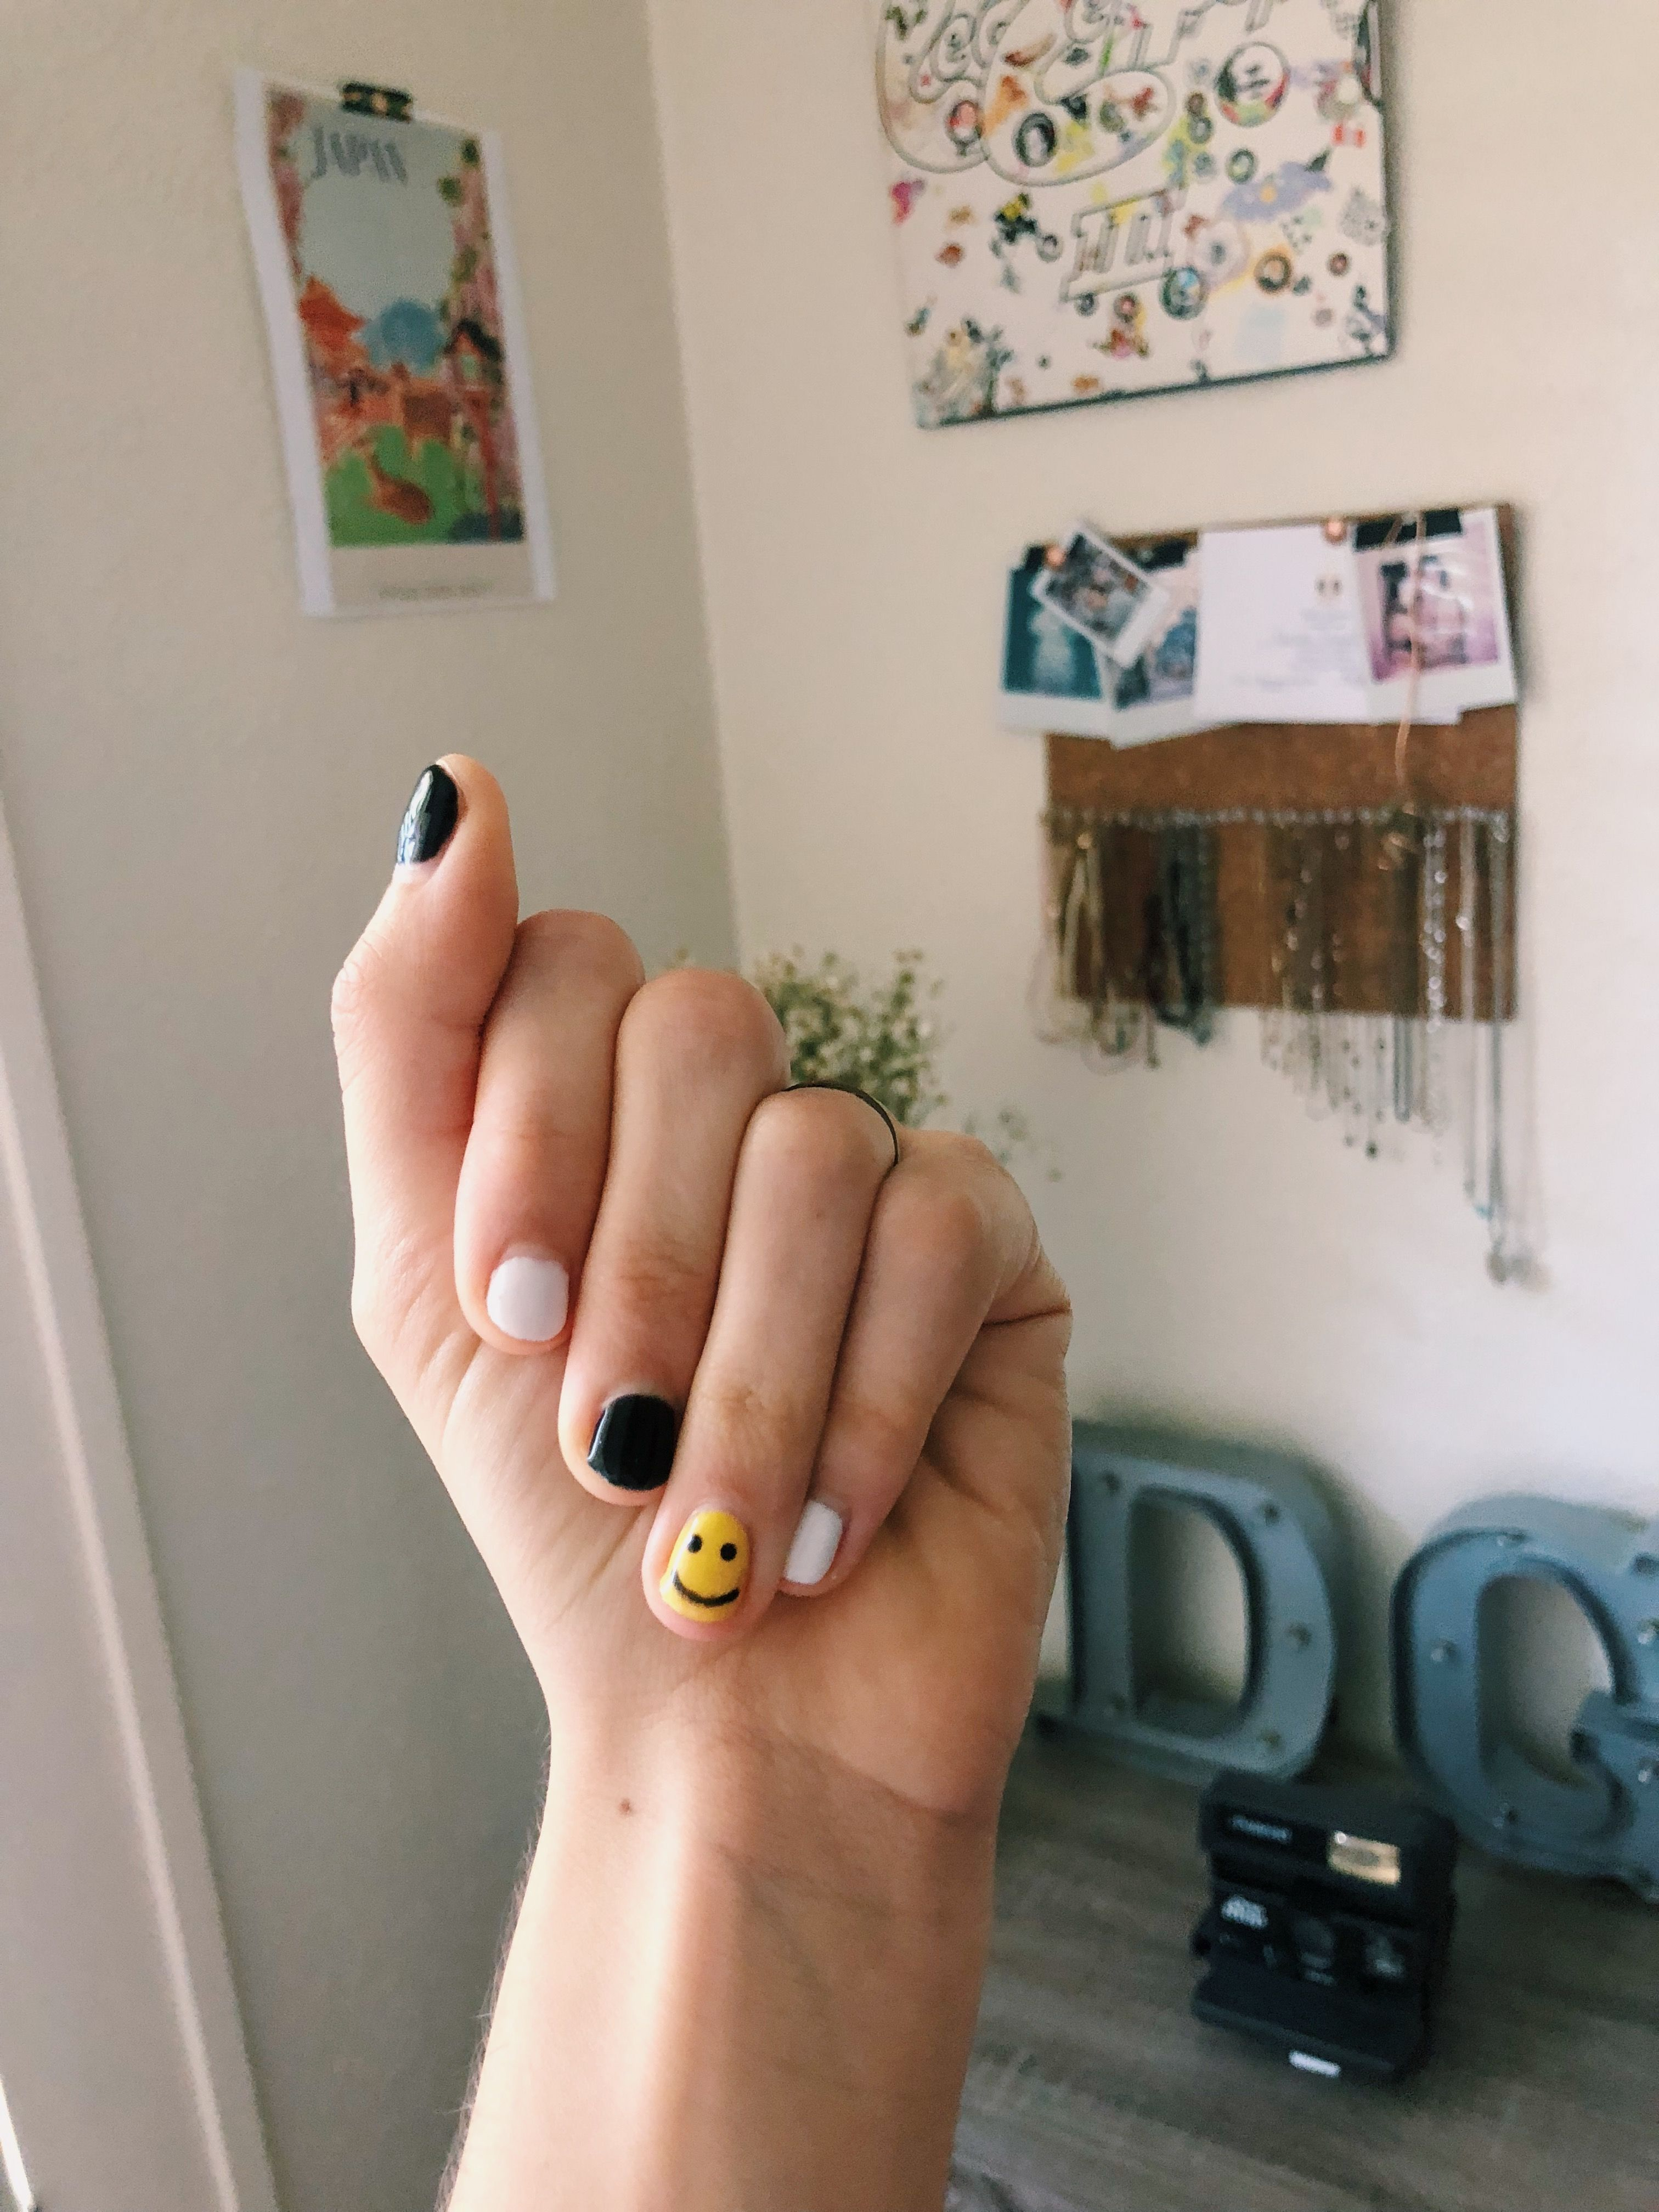 Happy Face Nails Black Gel Nails Black And White Nail Designs Black And White Nail Art Water printing nail art decals smiley face water nail stickers water transfer nail polish sticker smile water decals. gel nails black and white nail designs